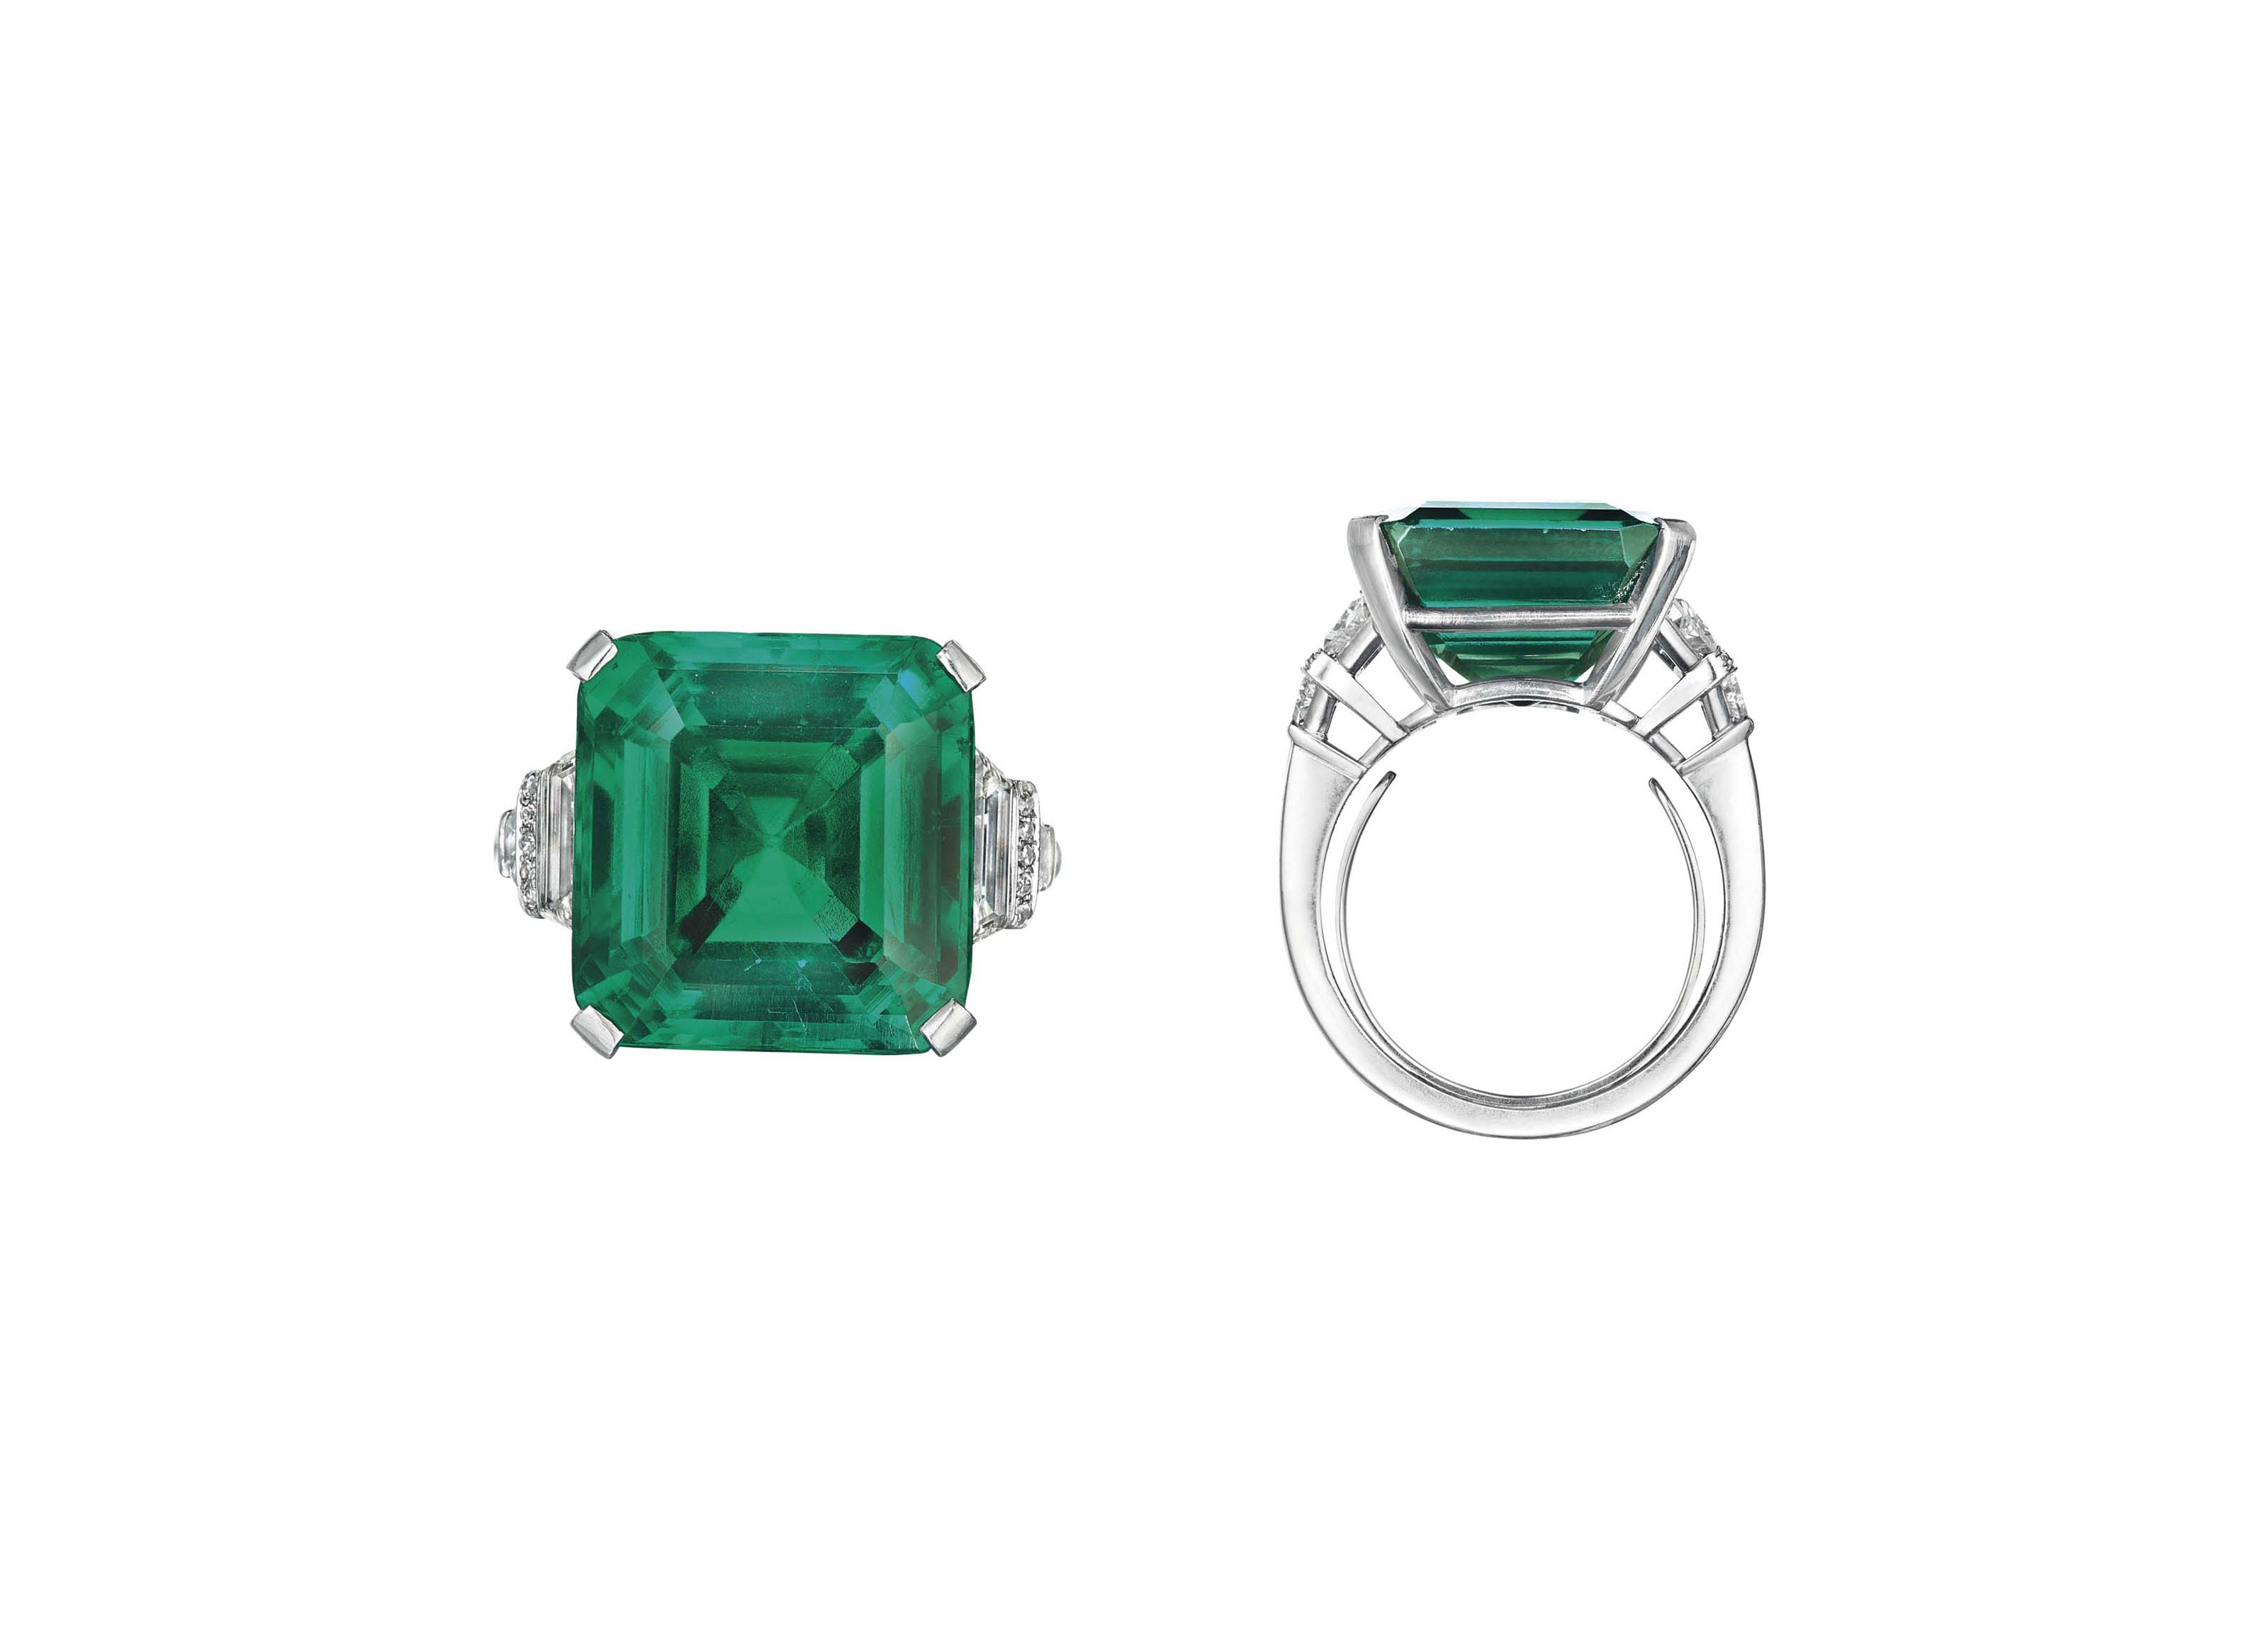 THE ROCKEFELLER EMERALD A RARE AND HISTORIC EMERALD AND DIAMOND RING, BY RAYMOND YARD